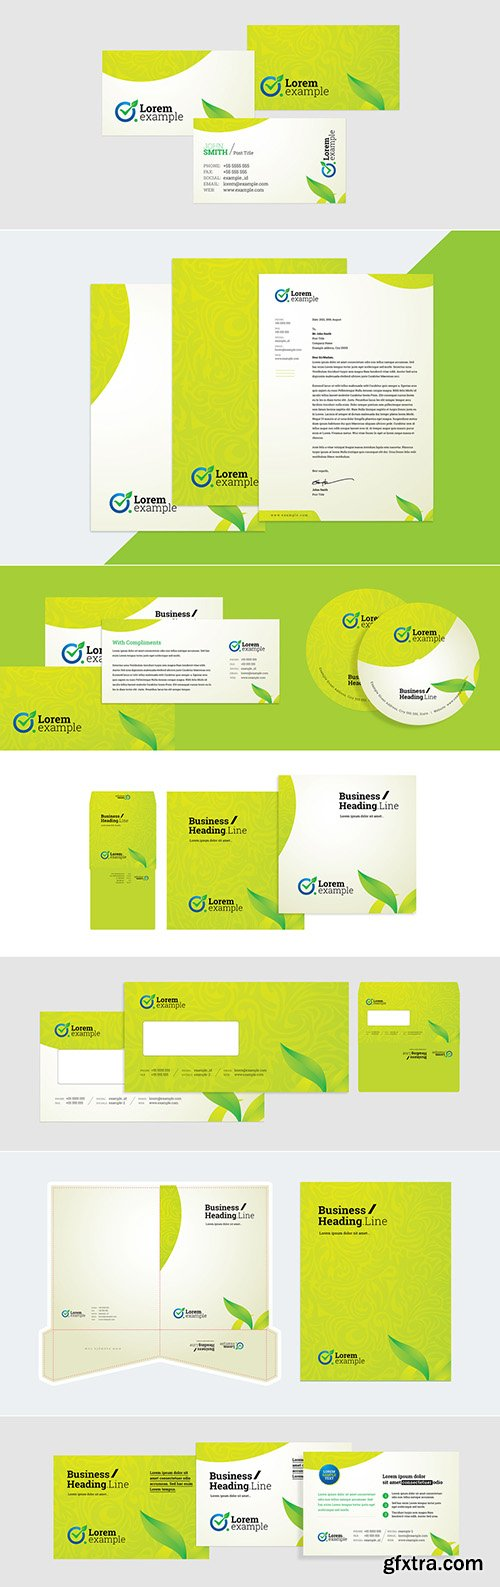 Green Corporate Identity Stationery with Green Floral Design Layout 270657007